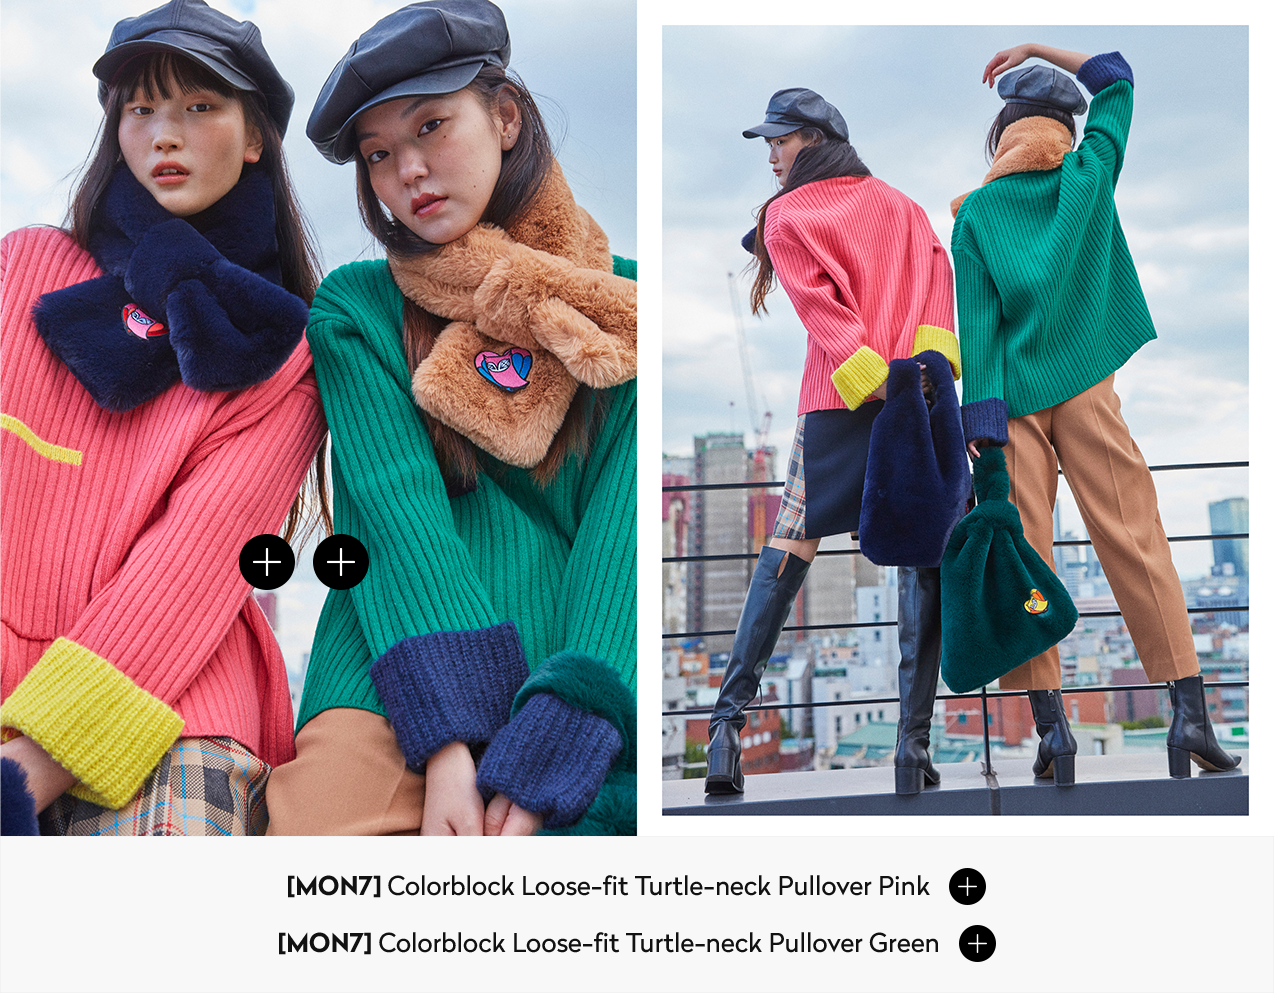 [MON7] Colorblock Loose-fit Turtle-neck Pullover Pink & [MON7] Colorblock Loose-fit Turtle-neck Pullover Green